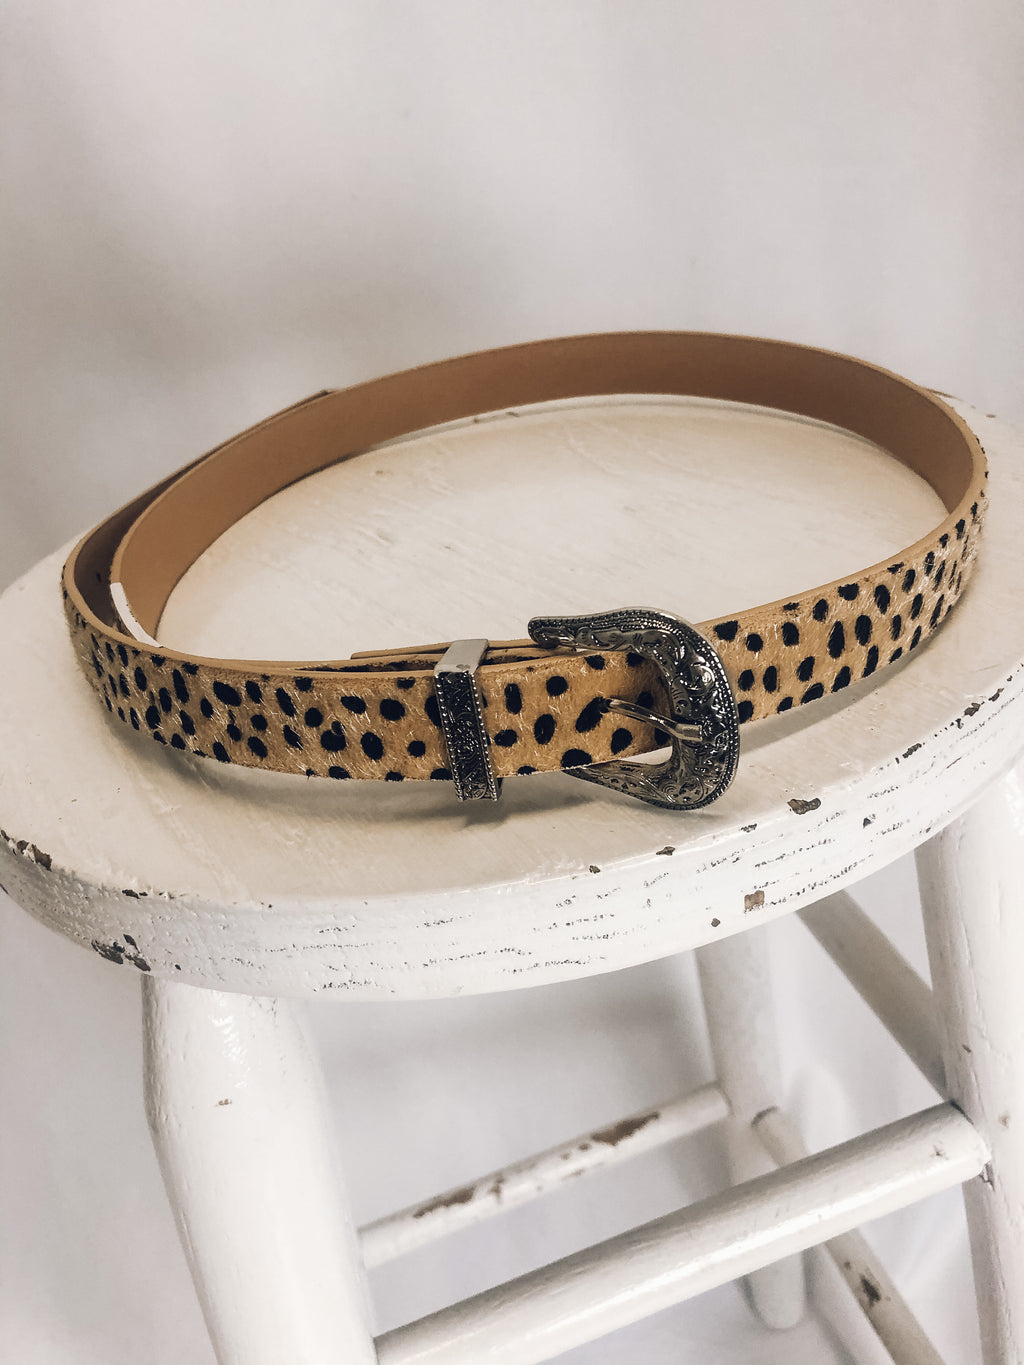 Harley Animal Print Belt